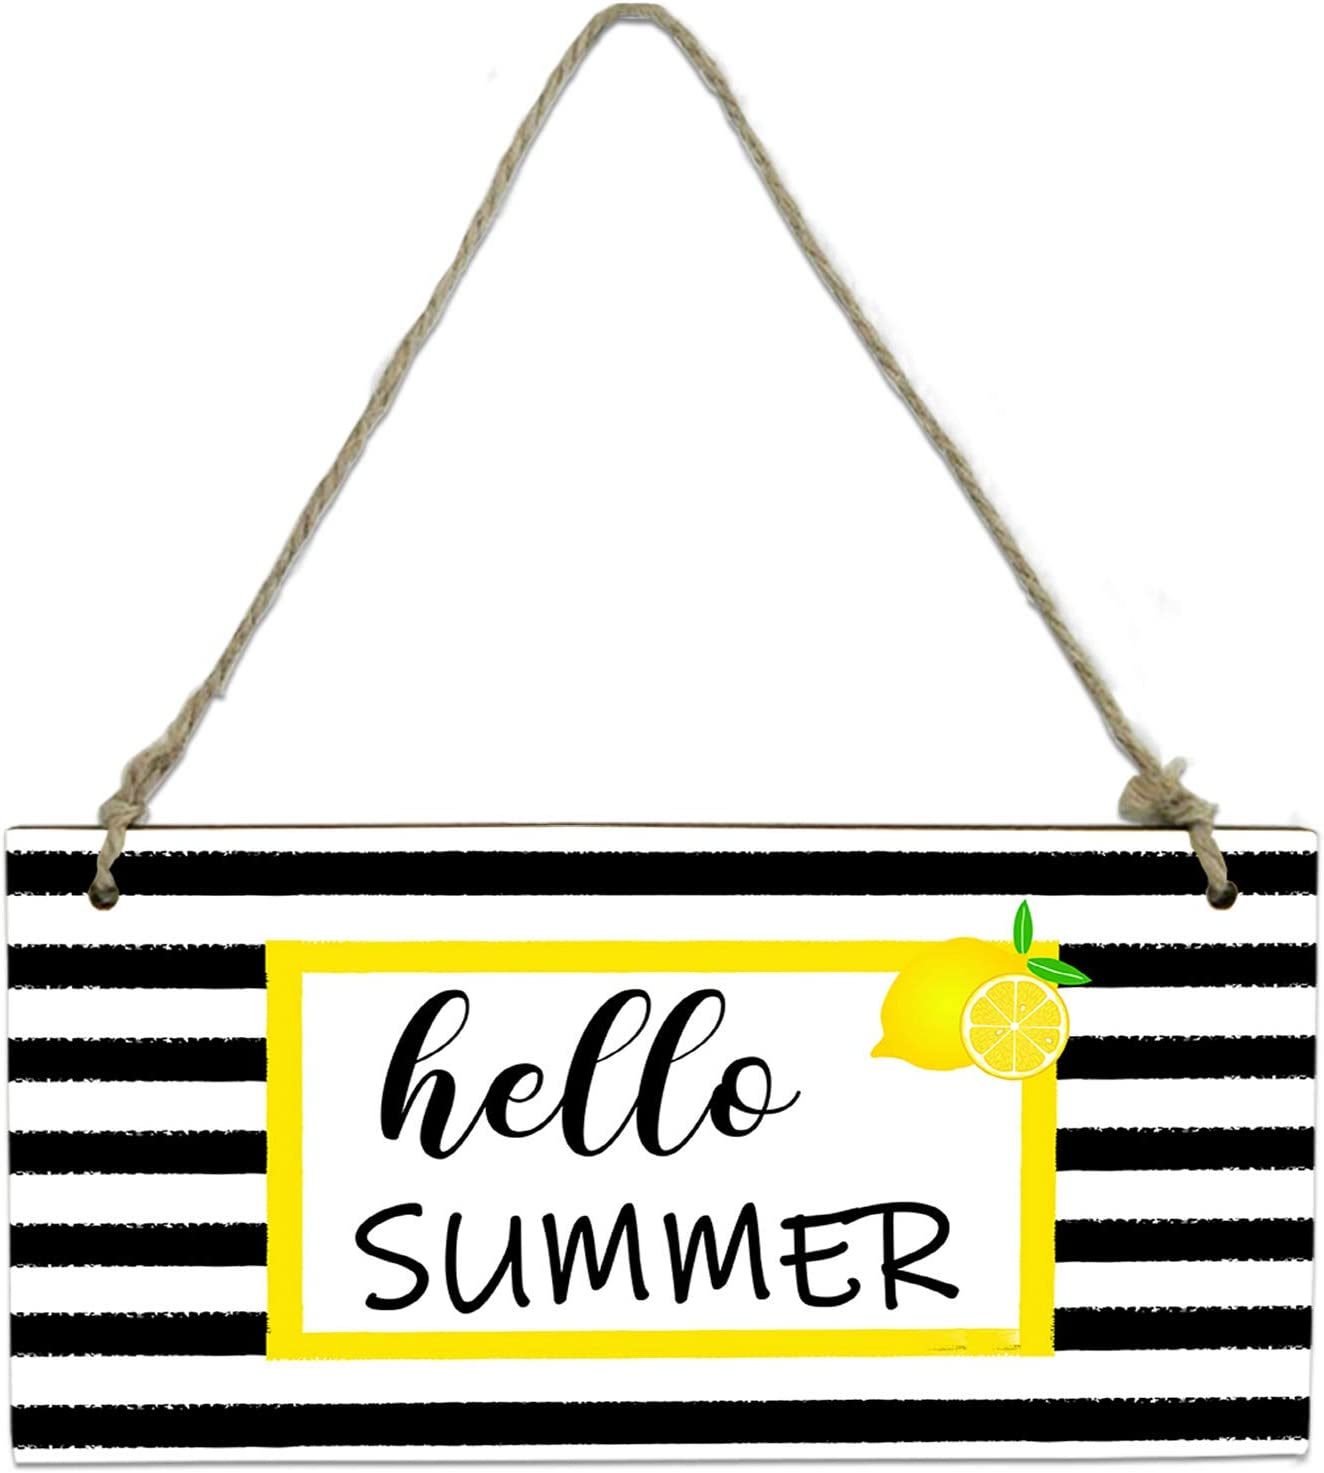 Hello Summer Lemon Yellow Lace Hanging Sign Board for Wall Door Home Decor, Black White Stripes Fresh Fruit Wooden Plaque with Hang Rope - 8